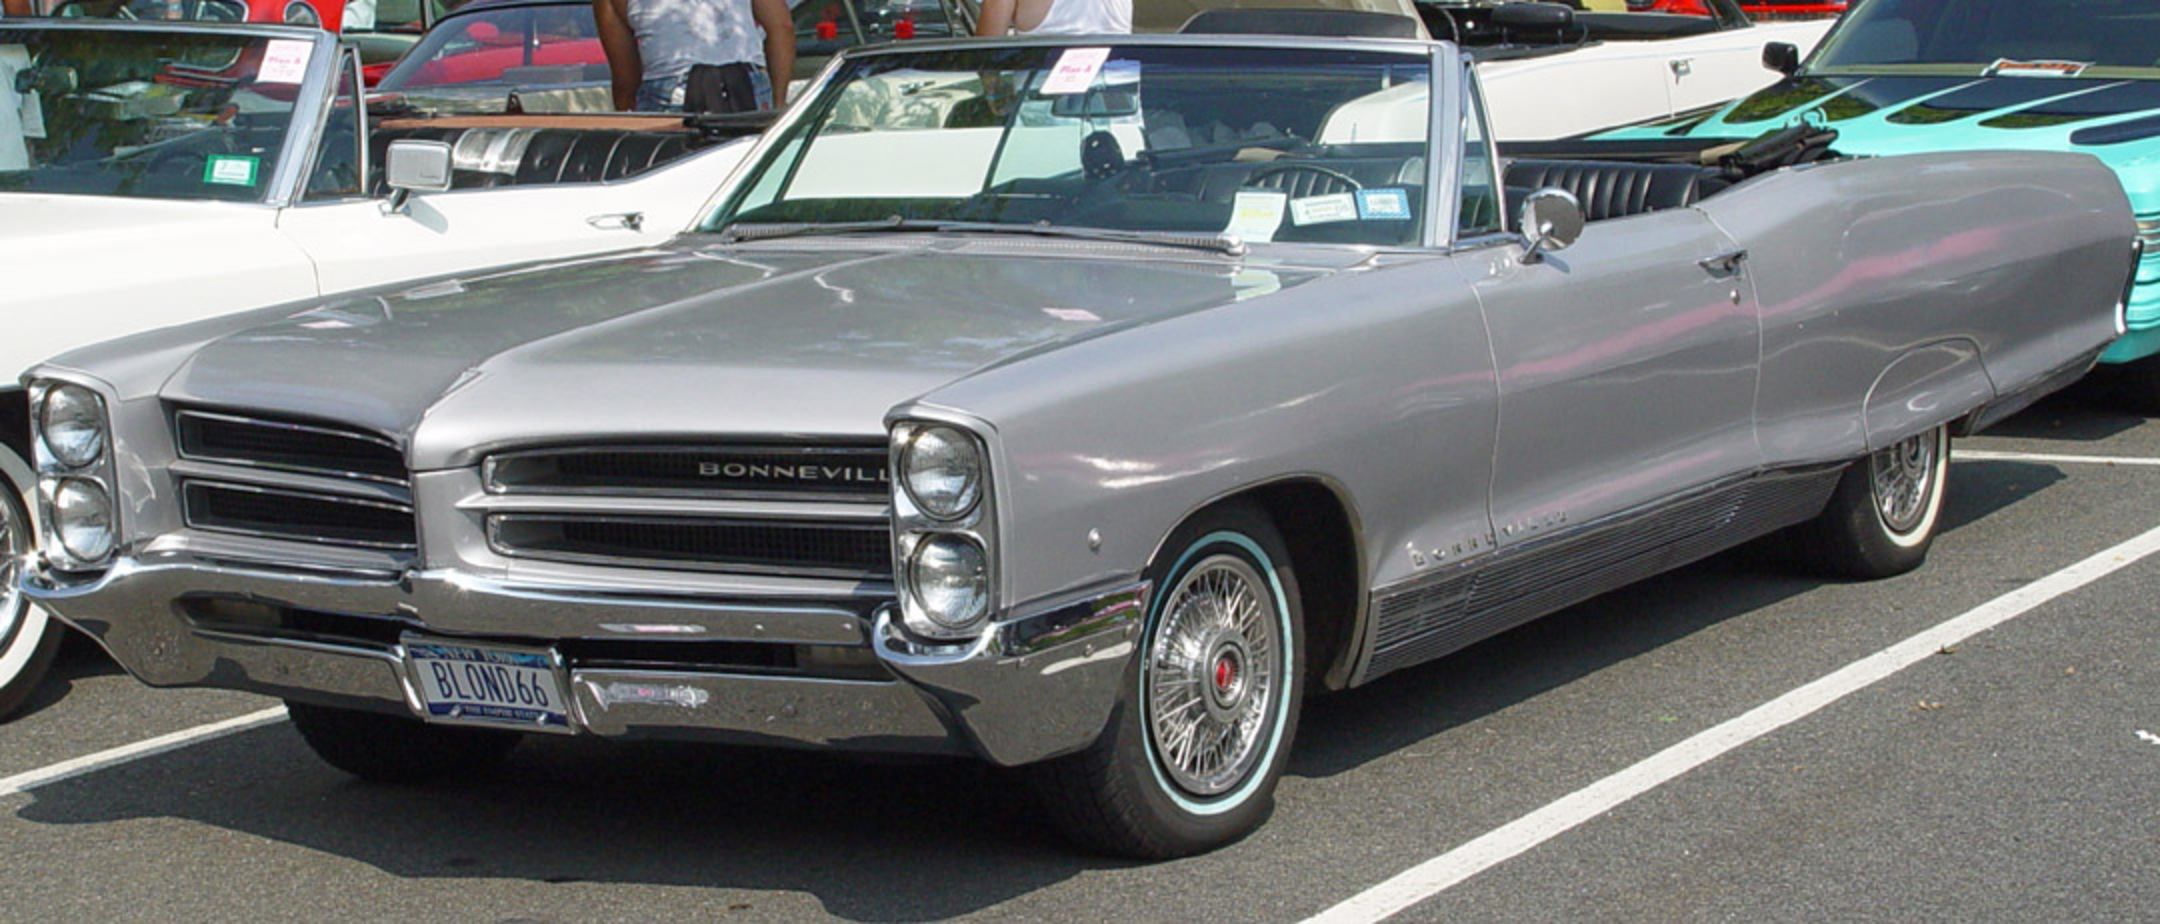 1966 Pontiac Bonneville Convertible. In Outer Space!